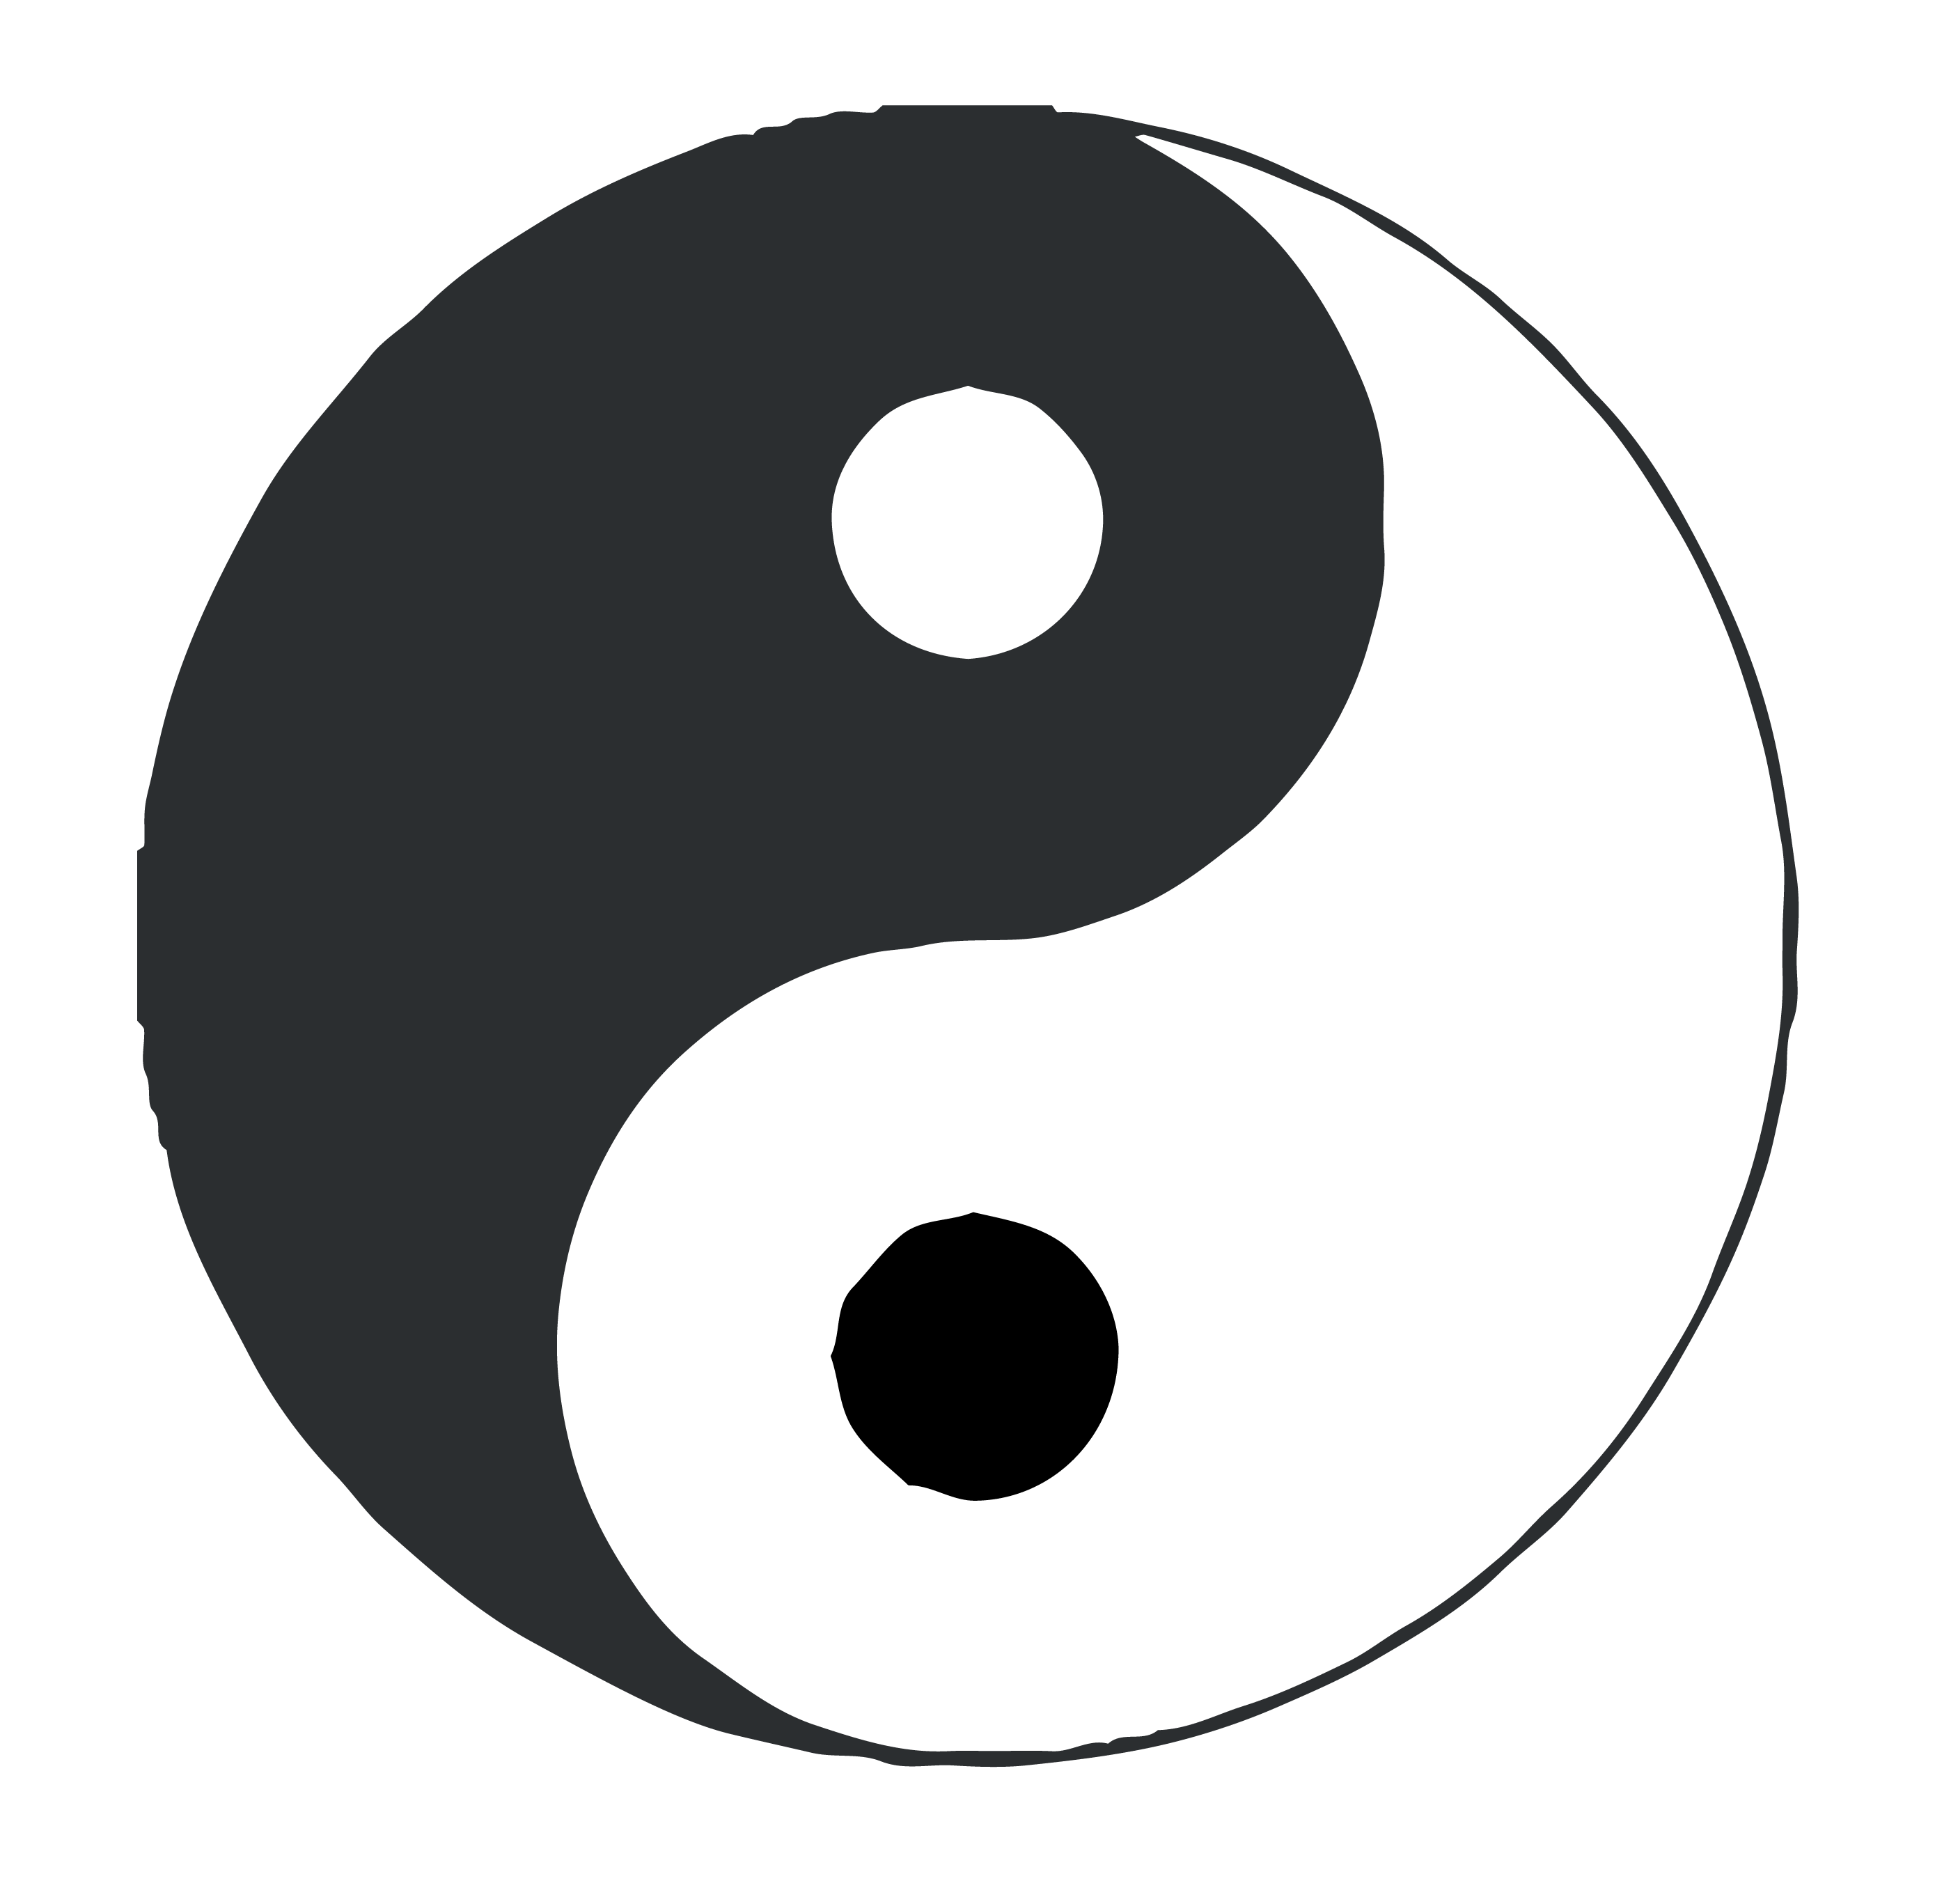 Pagan-Symbols-and-Meanings-Yin-Yang